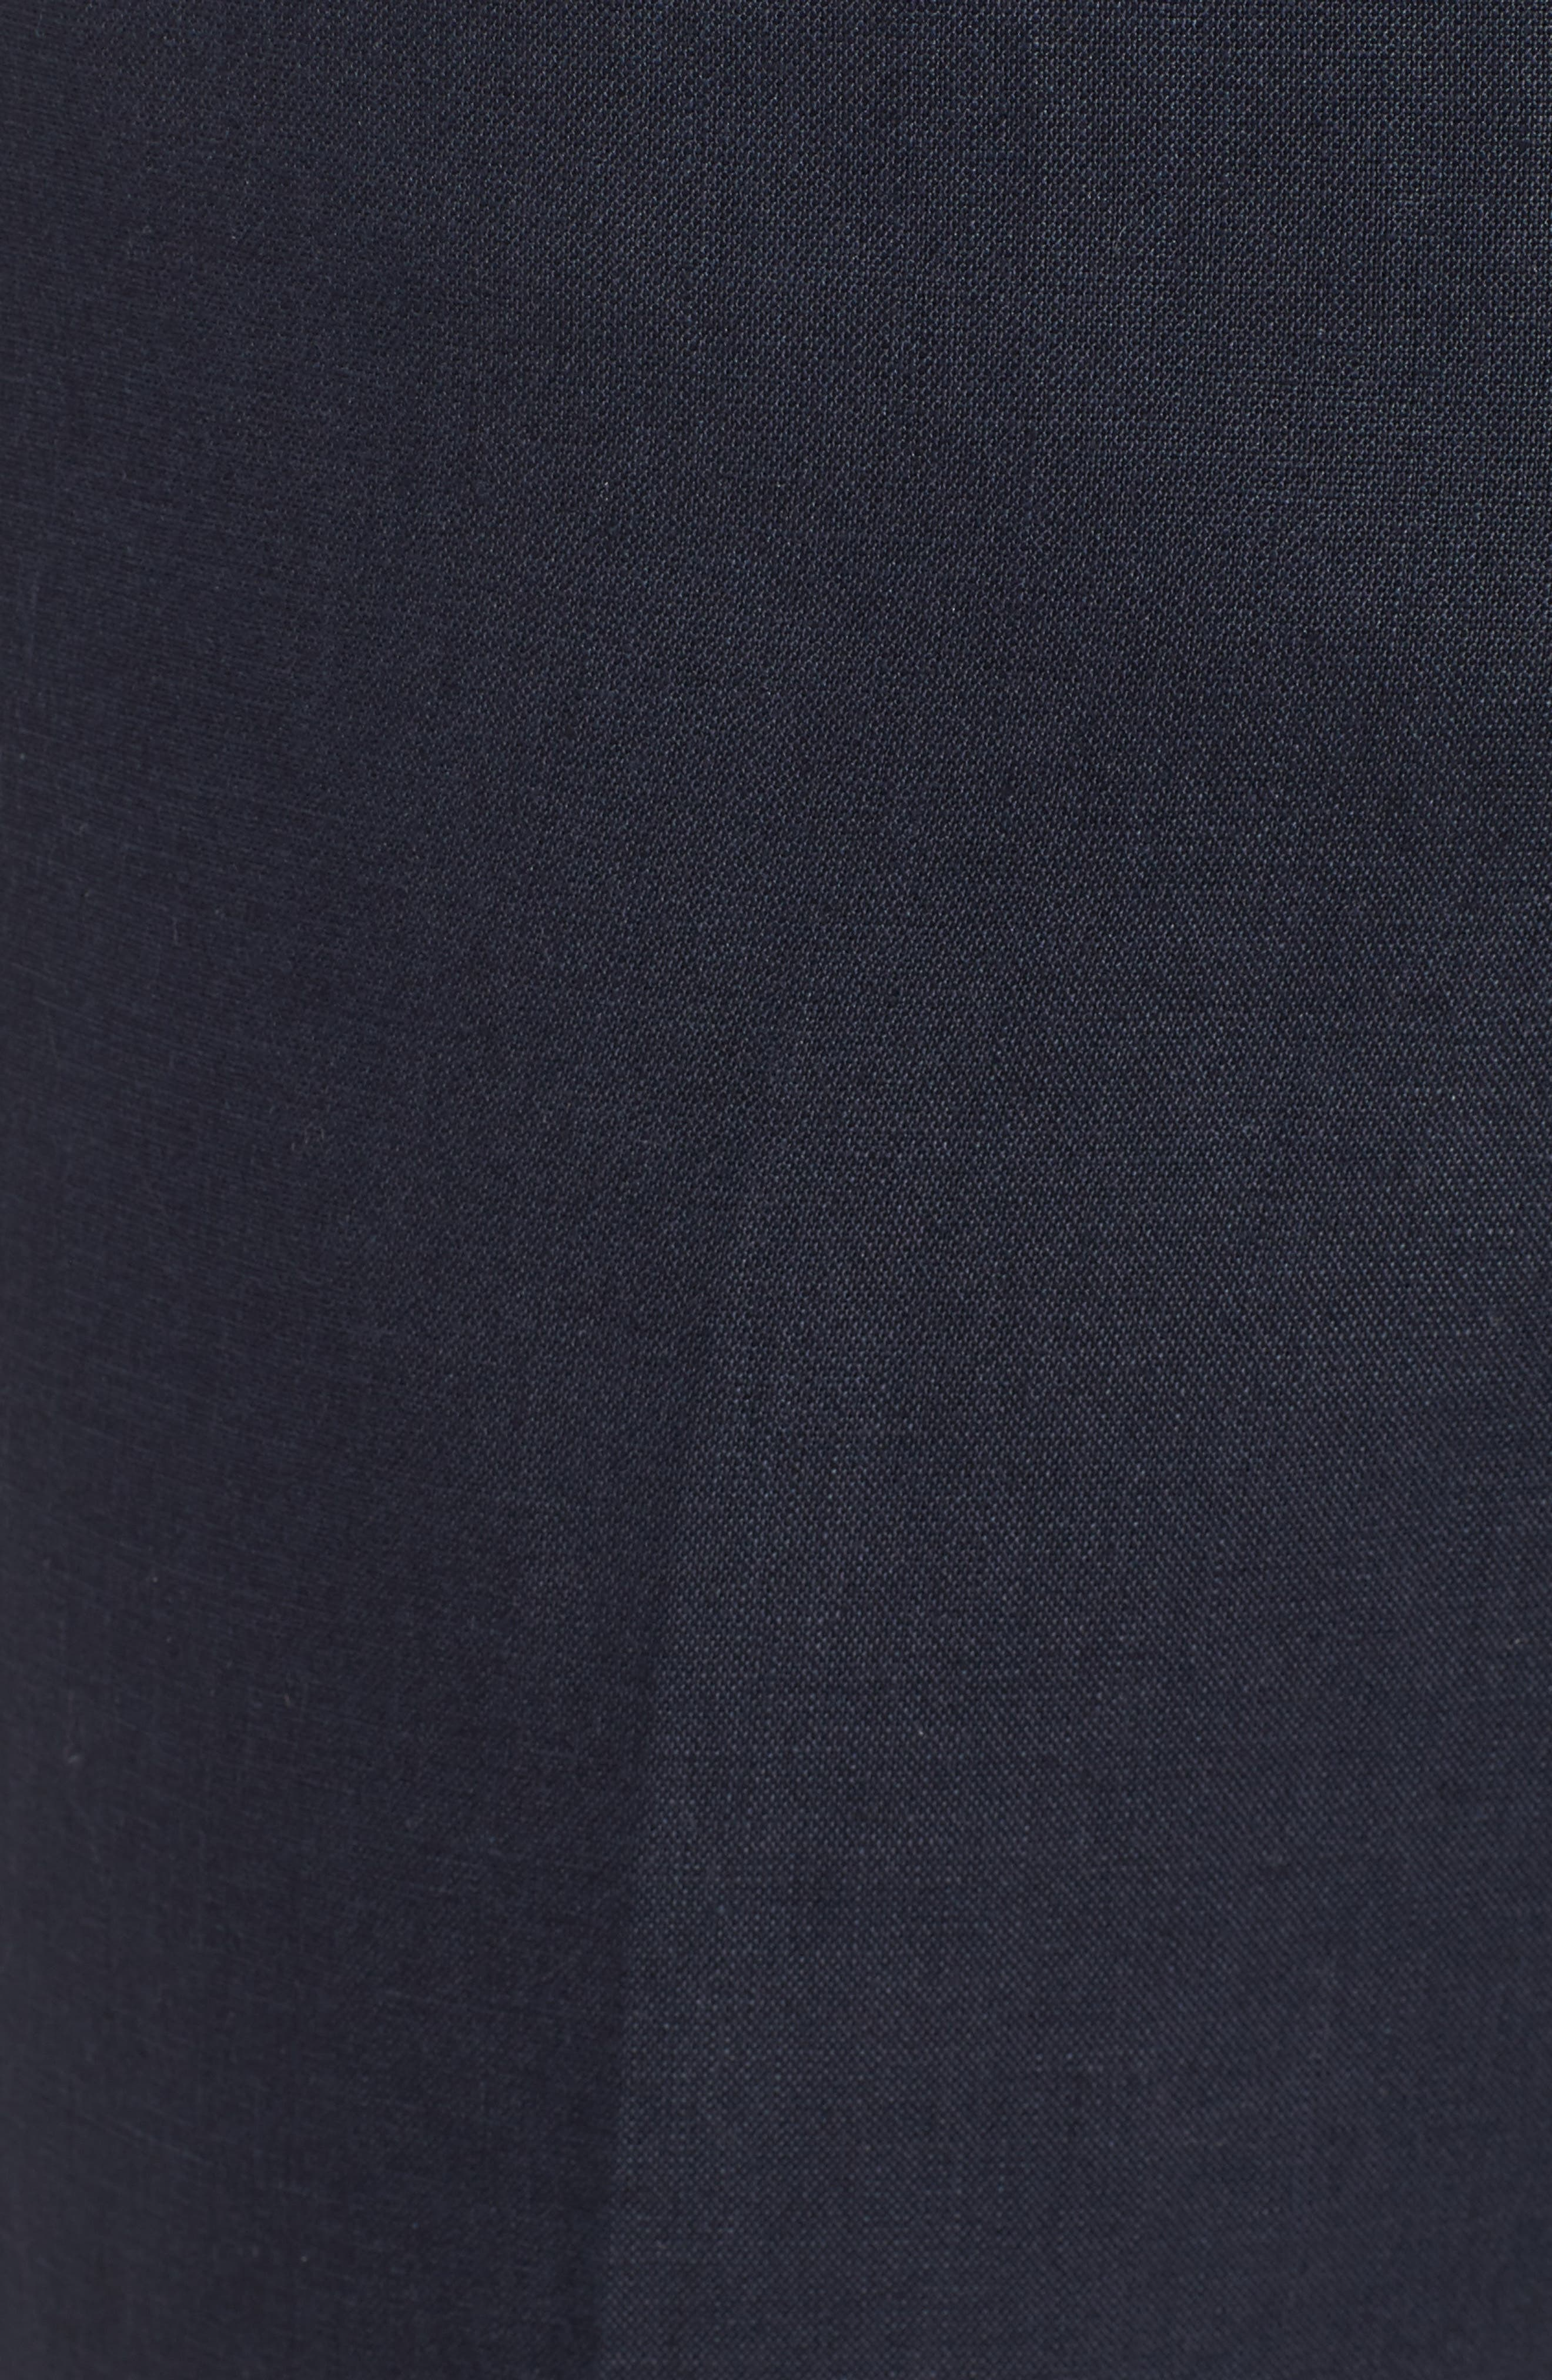 Flat Front Solid Linen Trousers,                             Alternate thumbnail 7, color,                             Navy